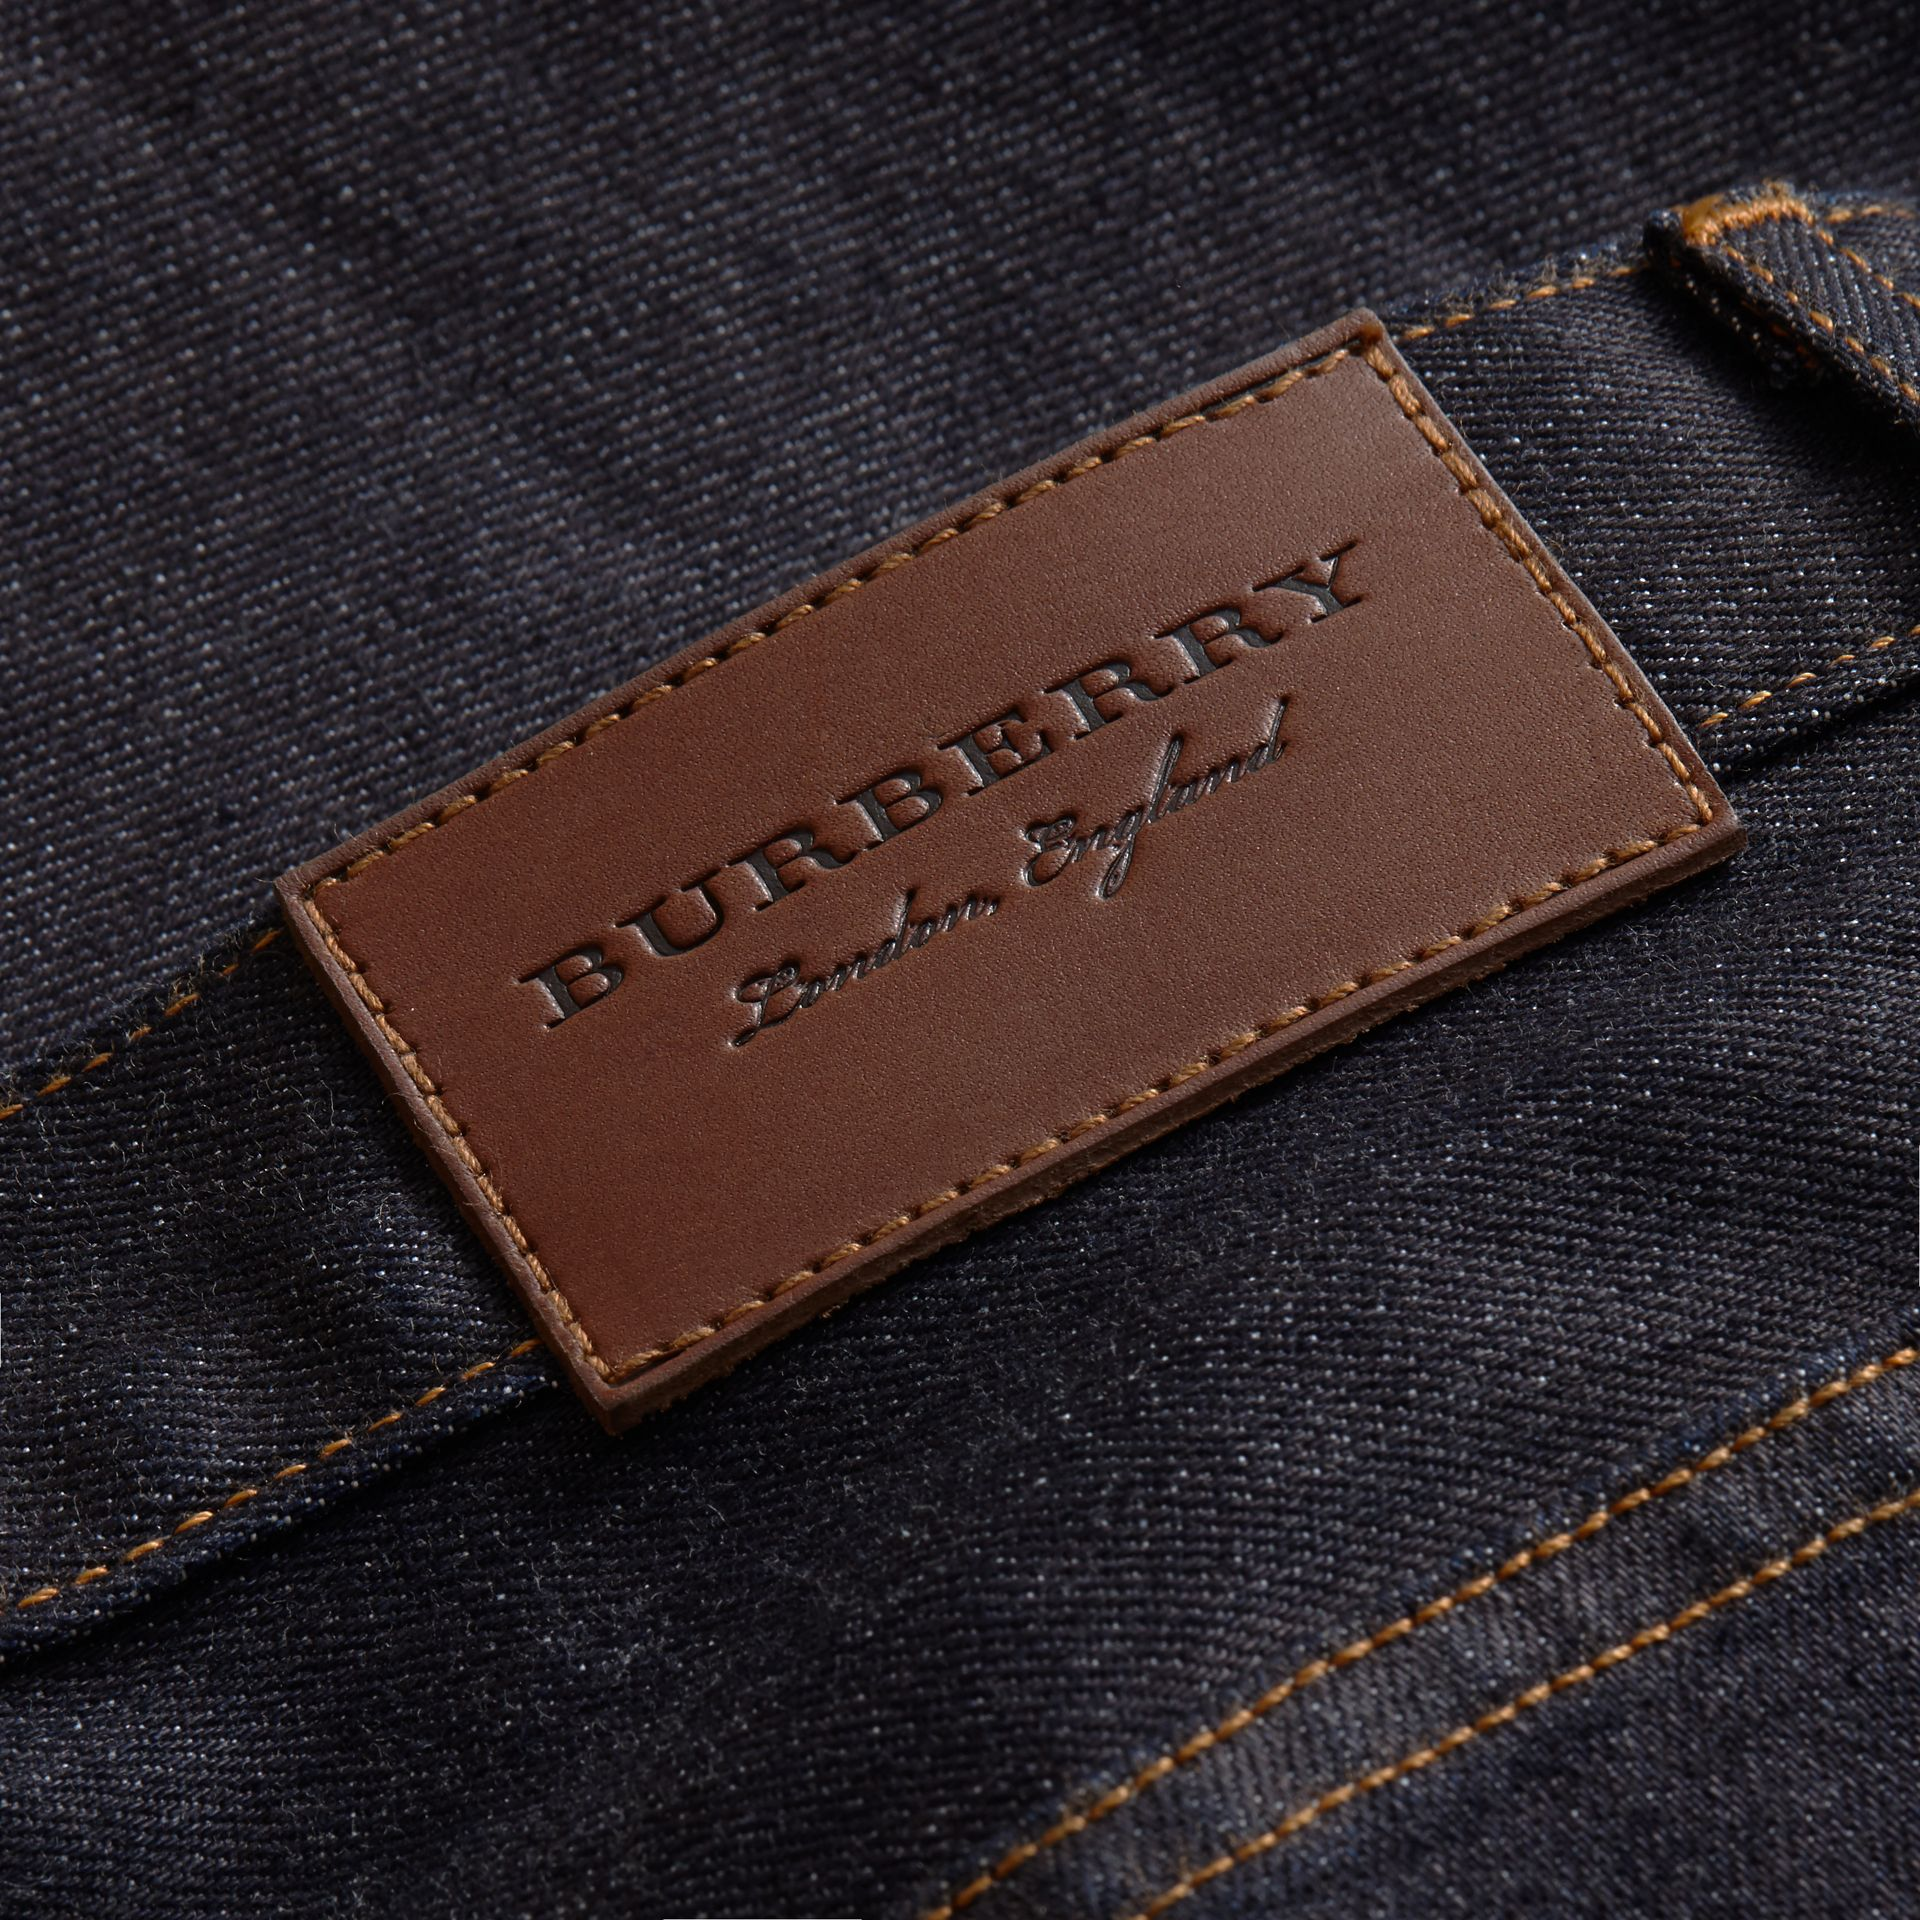 Relaxed Fit Comfort Stretch Indigo Japanese Denim Jeans in Dark - Men | Burberry - gallery image 1